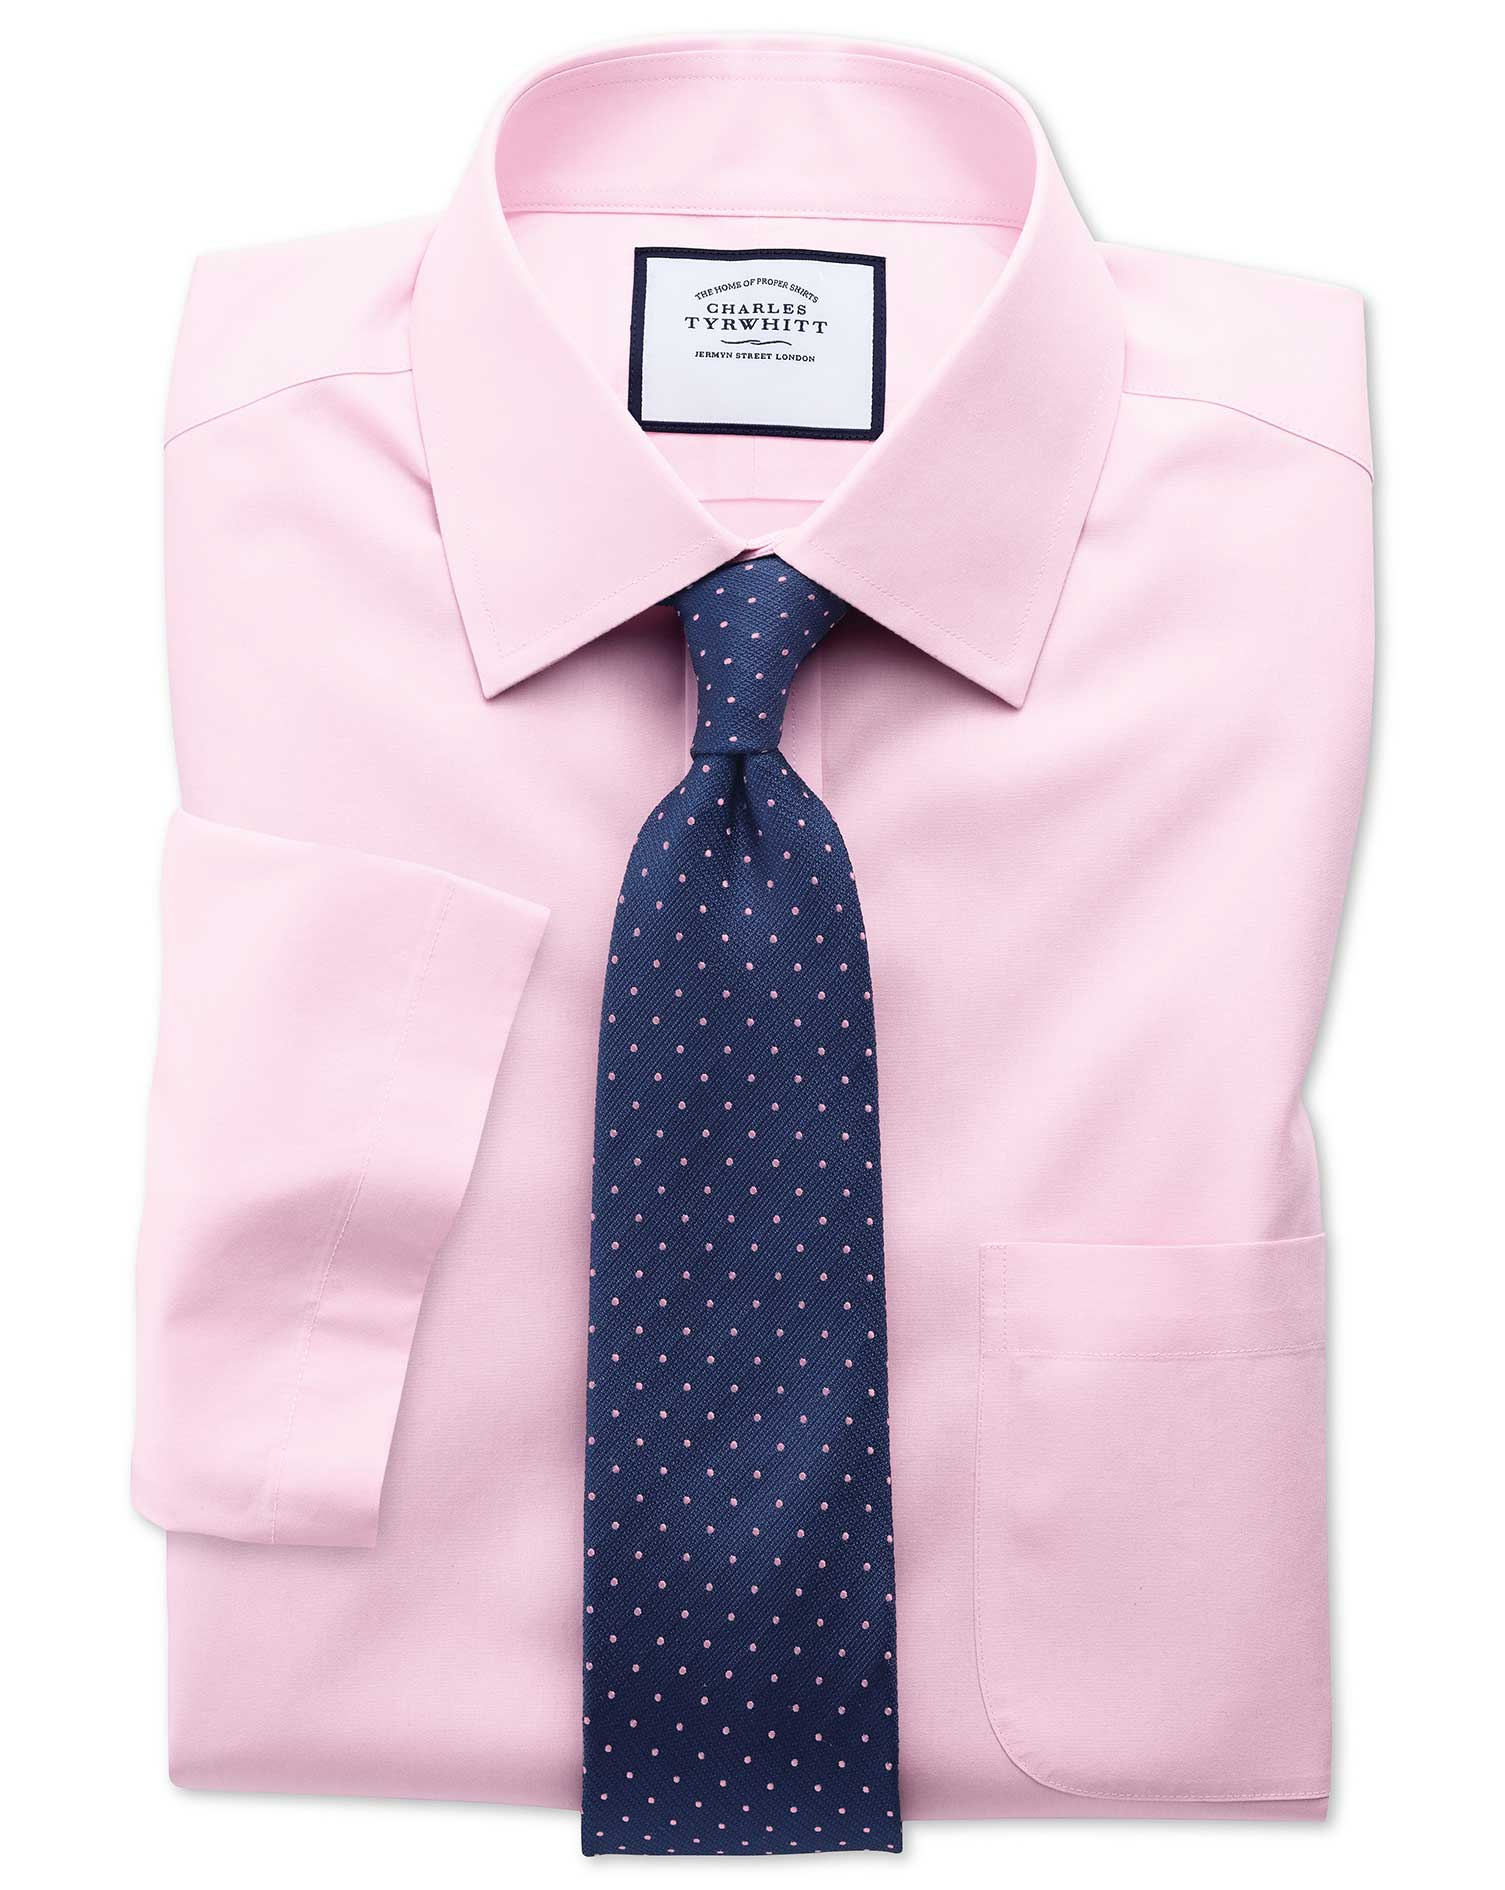 That shop later grew to include locations throughout the UK and in the United States and other locations. Charles Tyrwhitt shirts are so popular today that the company named its official website deutschviral.ml, but it now sells a wide range of apparel and accessories for both men and women.